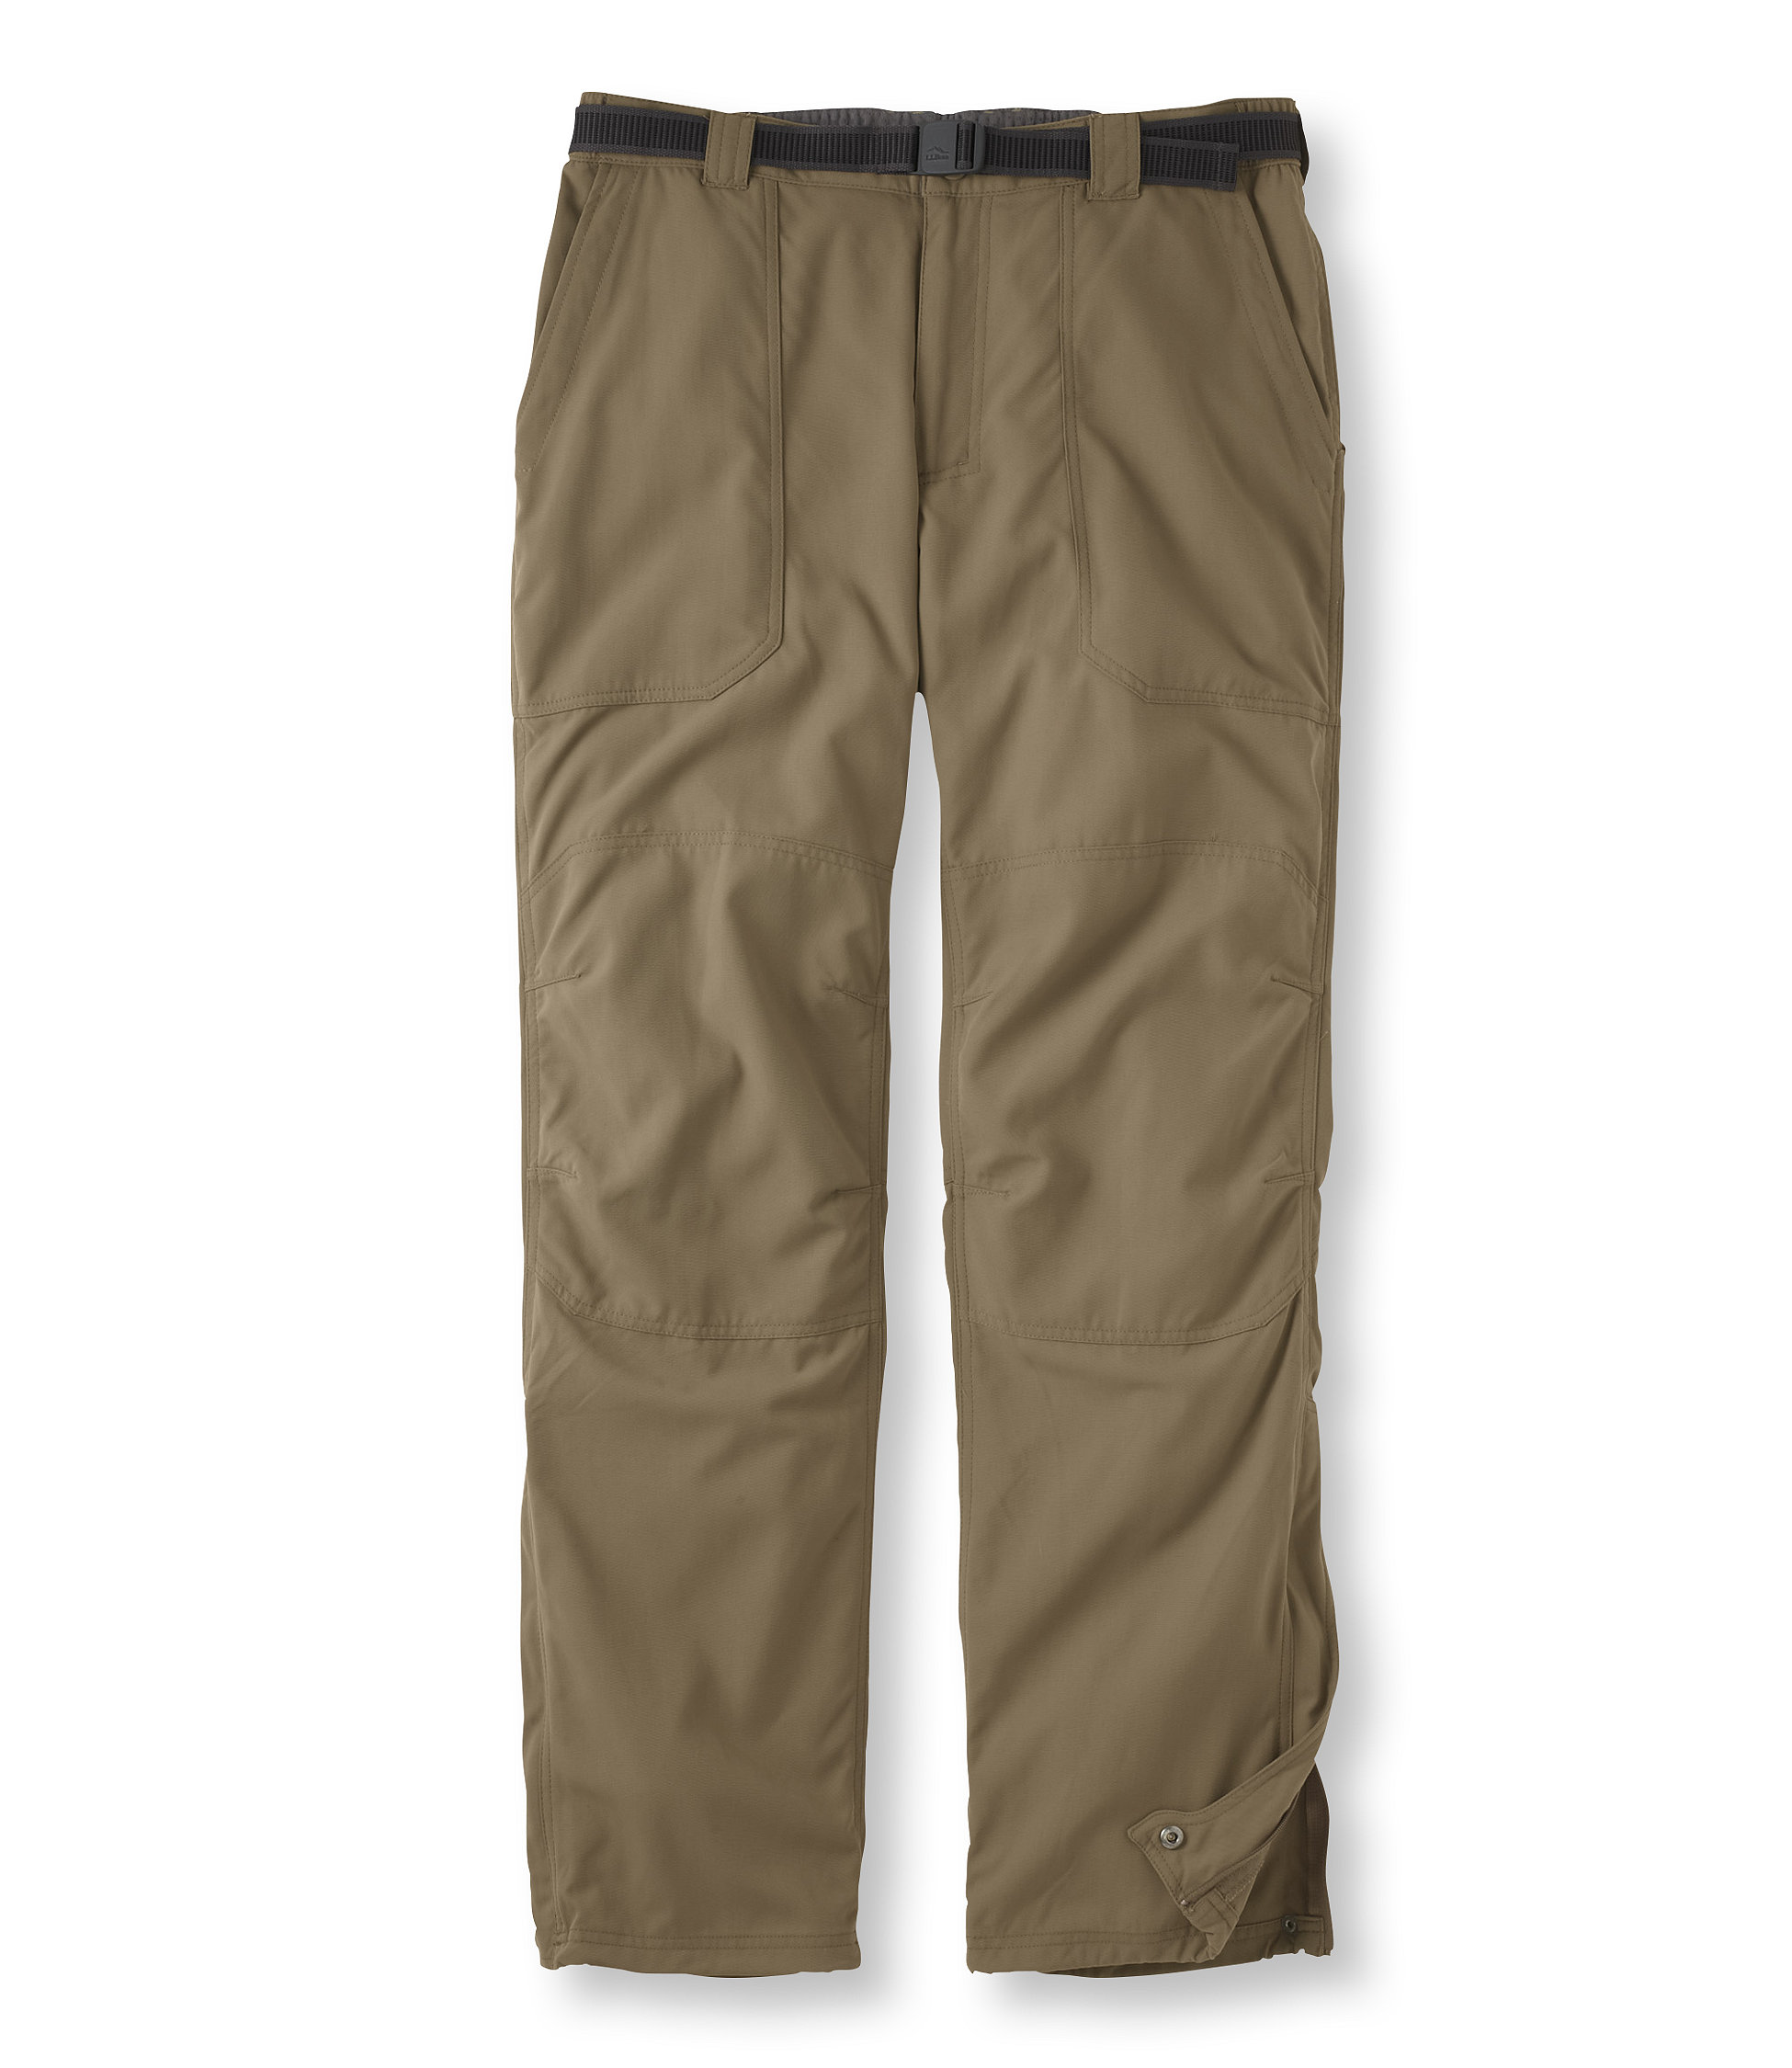 L.L.Bean Timberledge Pants